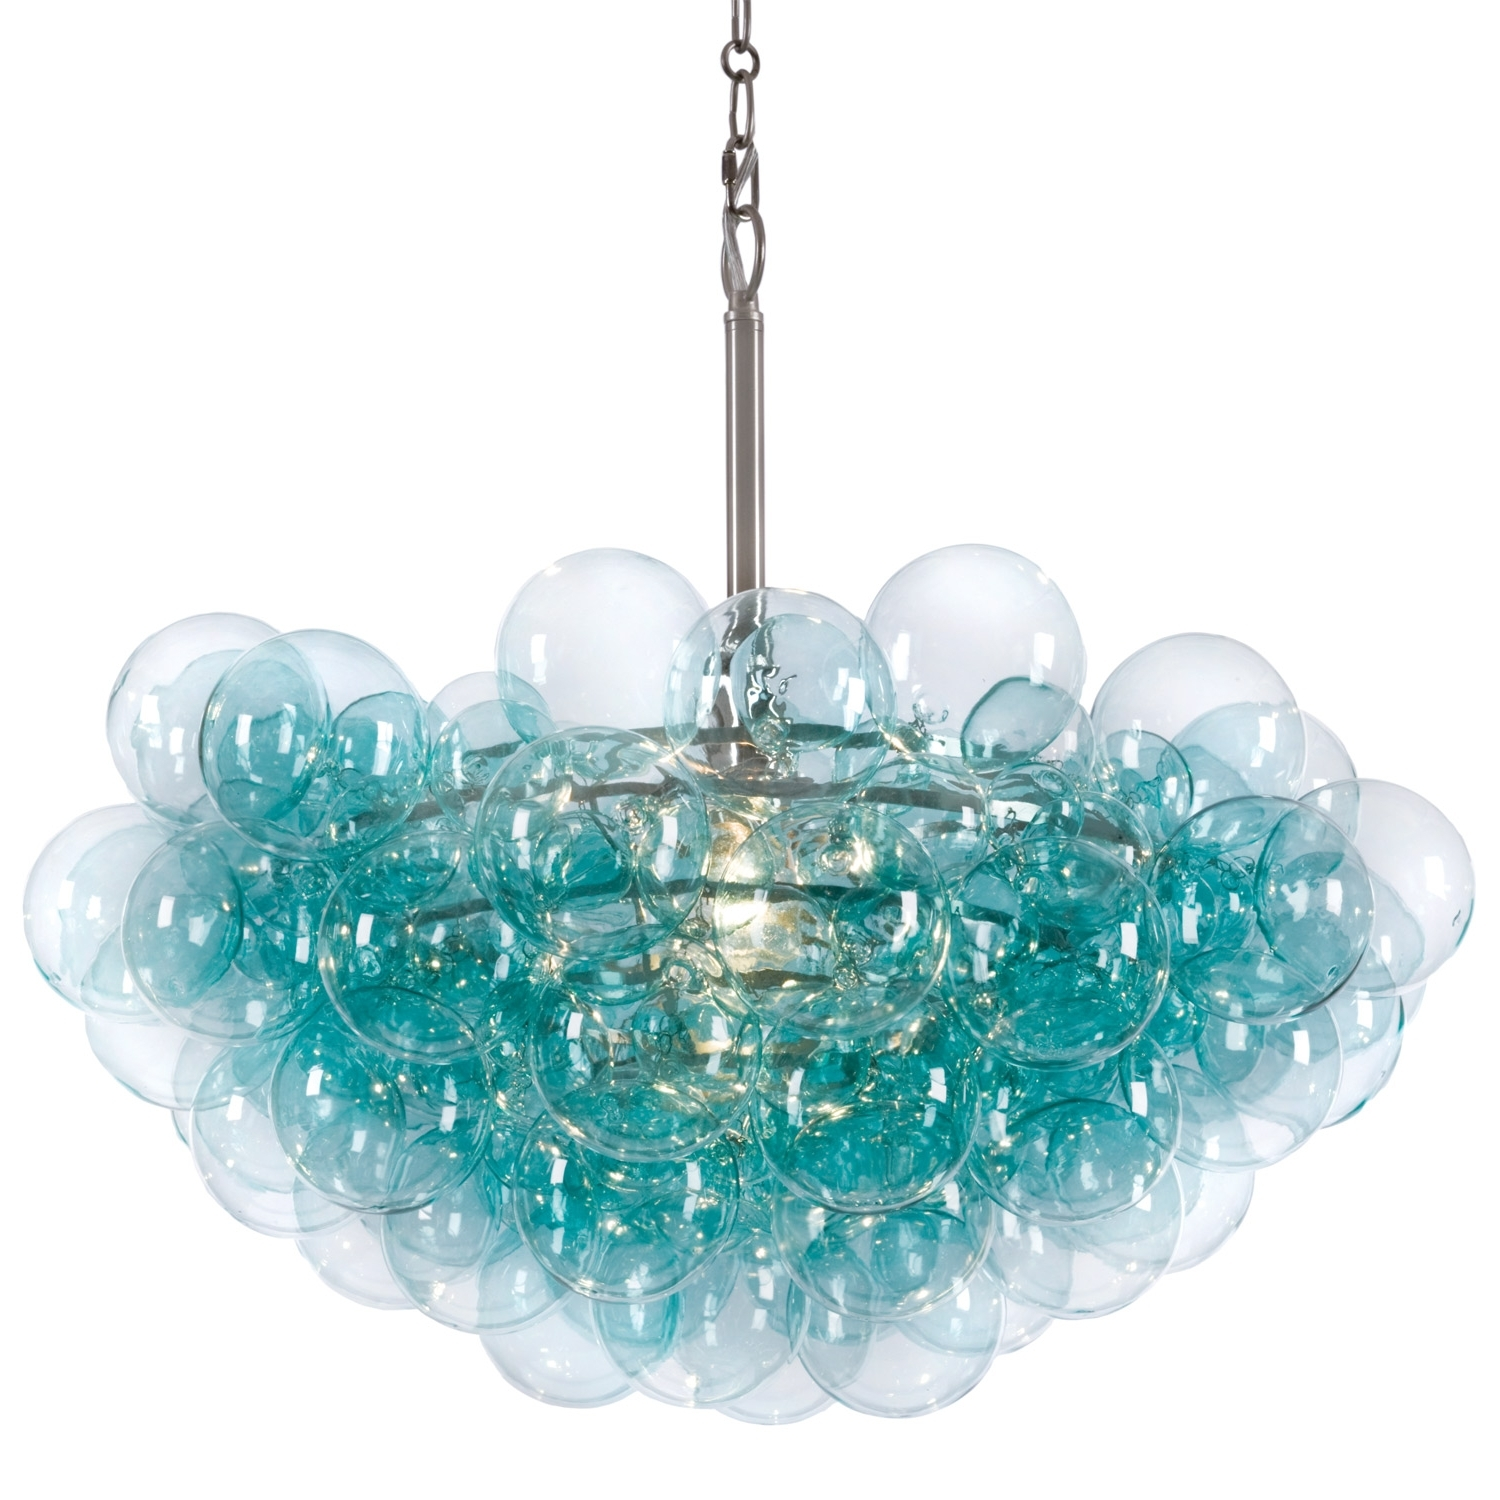 Best And Newest Regina Andrew Aqua Bubbles Chandelier @zinc Door ( For Over Dining Within Turquoise Ball Chandeliers (View 3 of 20)